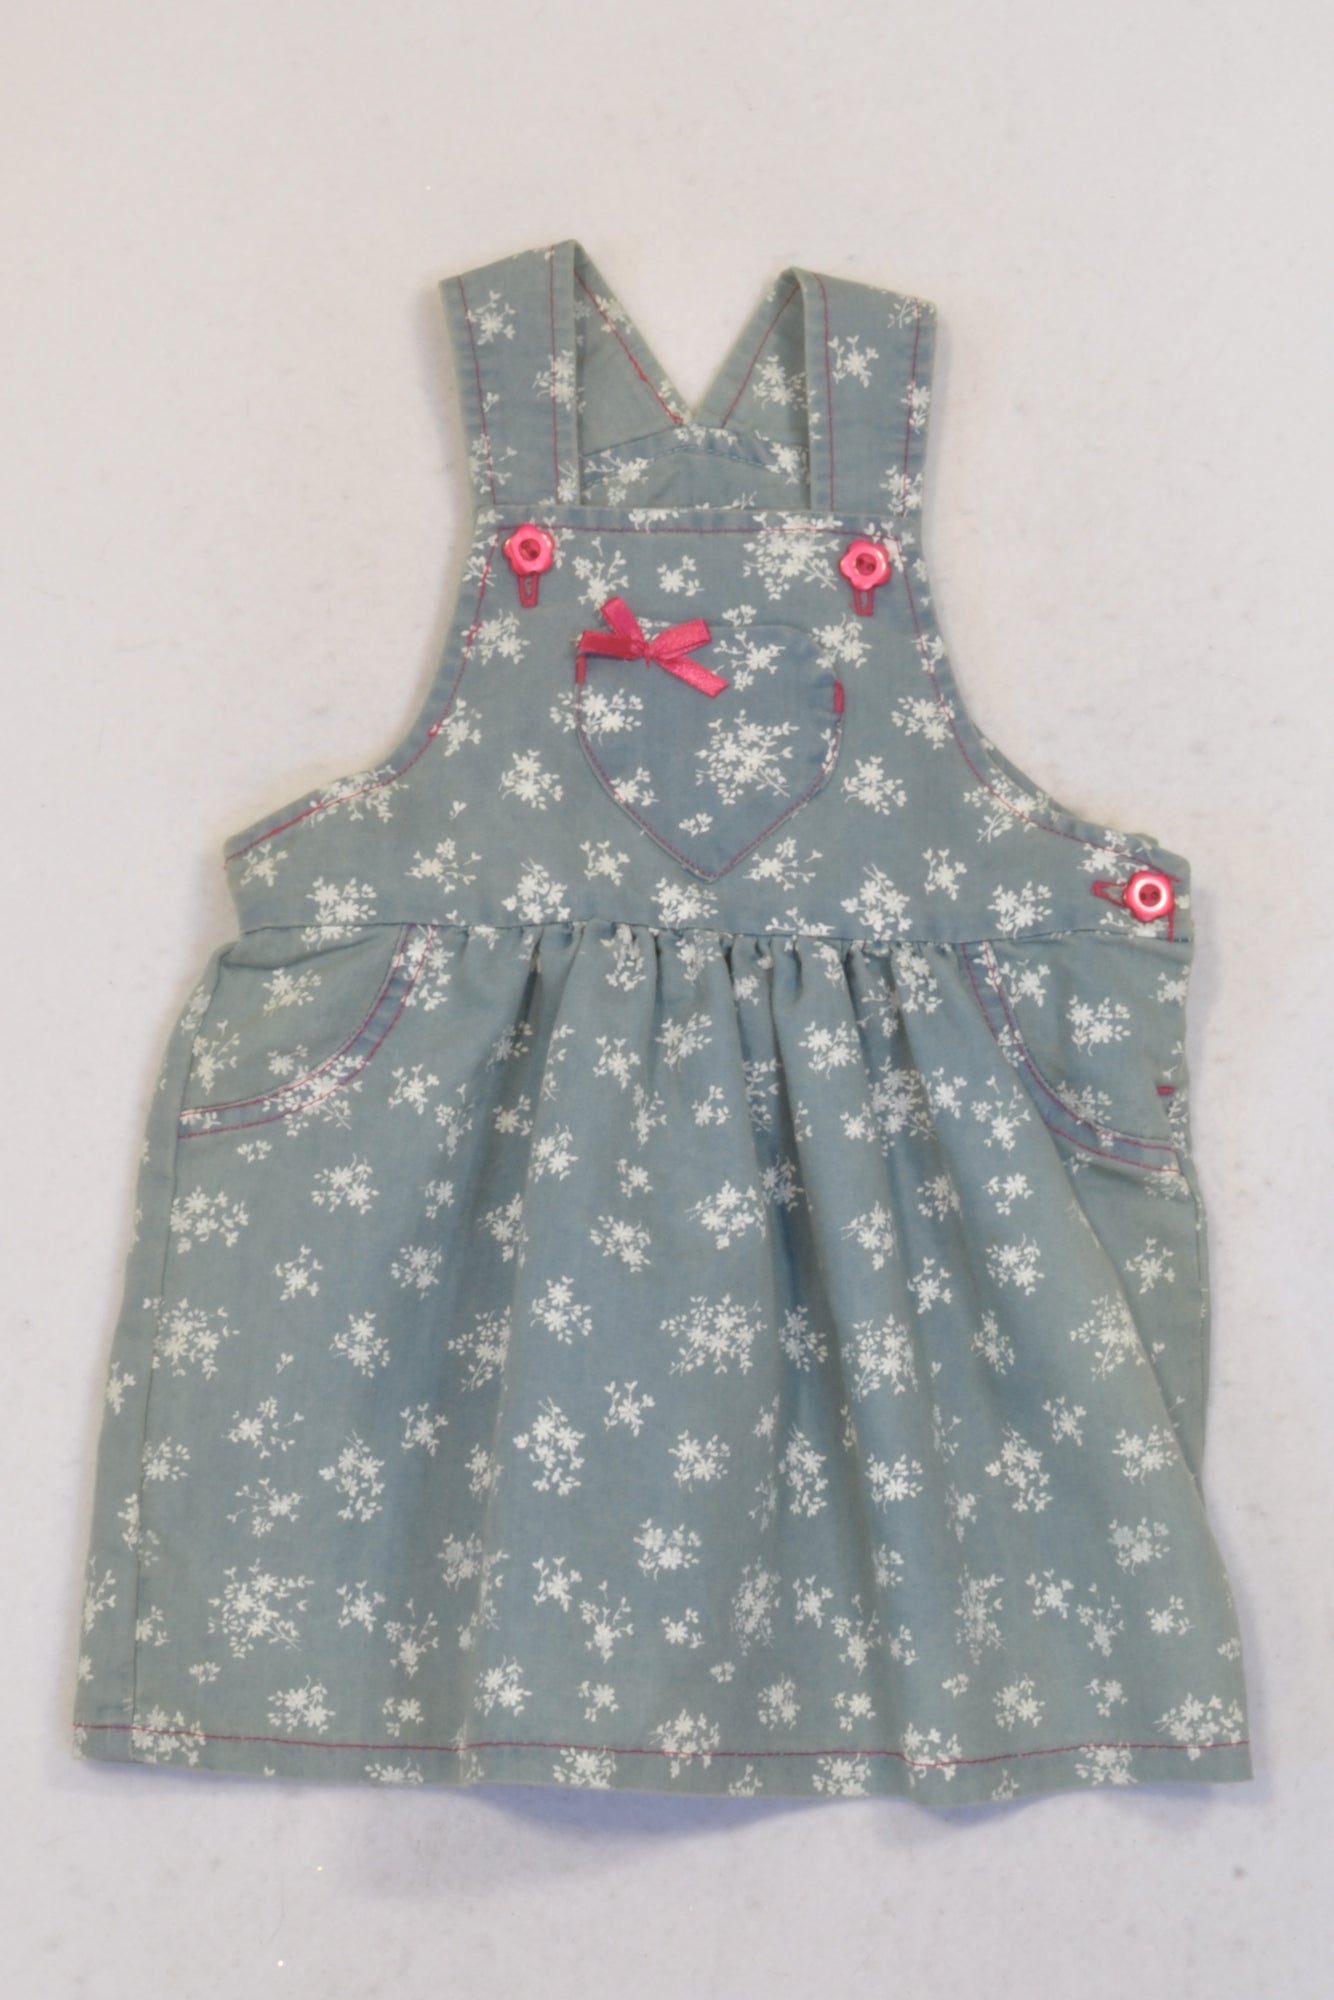 Ackermans Floral Lightweight Dungaree Dress Girls 12-18 months